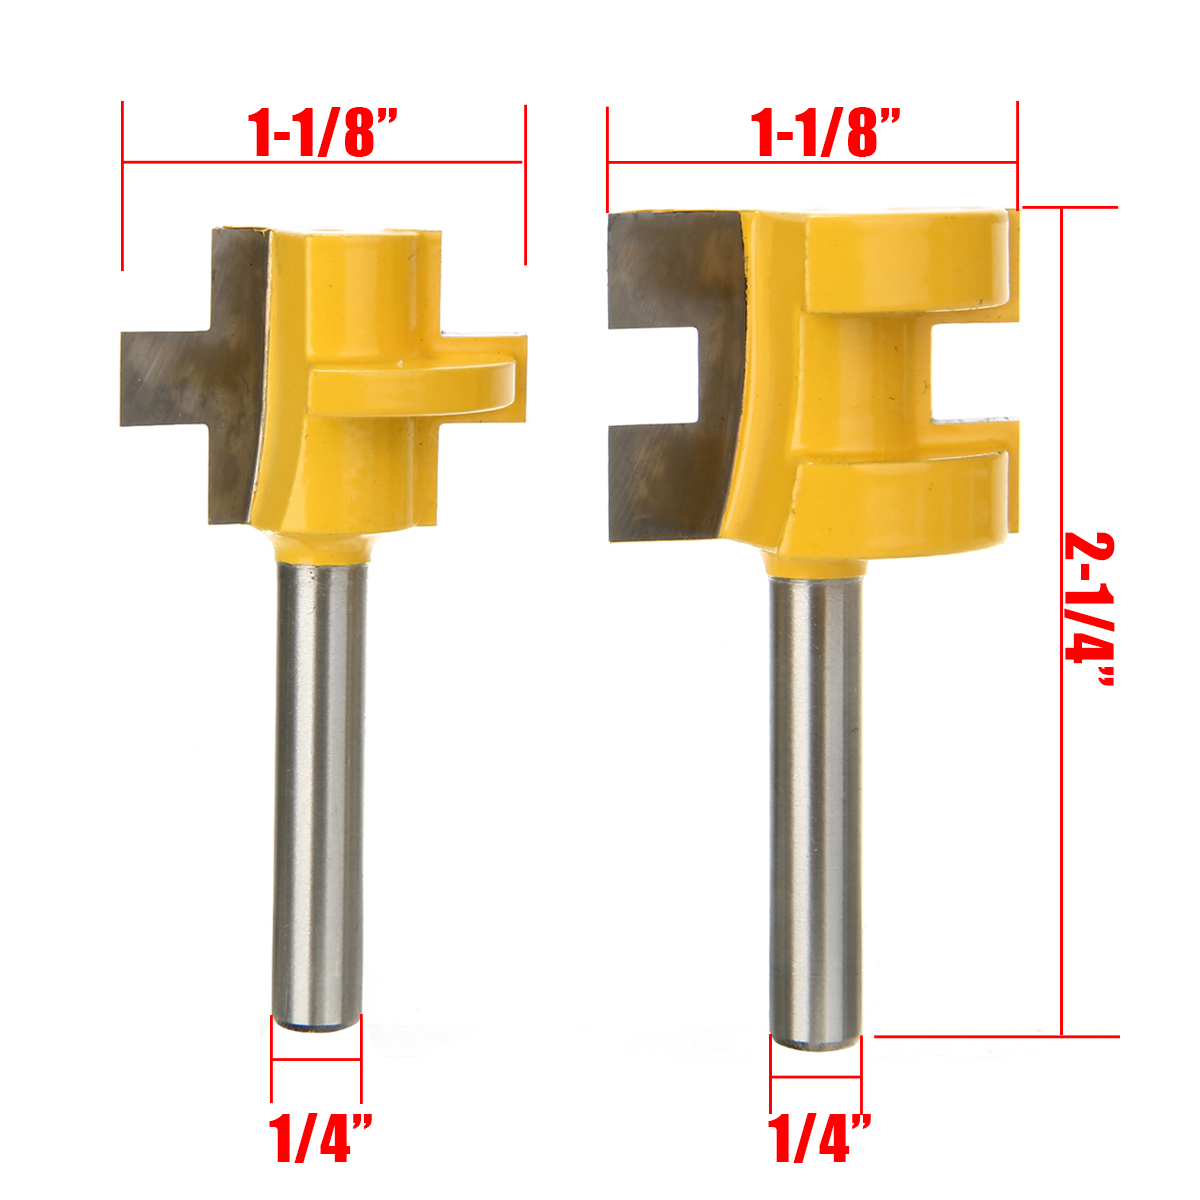 2Pcs Woodworking Chisel Cutter 2 Bit Tongue And Groove Router Bit 1 4 quot Shank Milling Cutter Woodworking Chisel Cutter in Milling Cutter from Tools